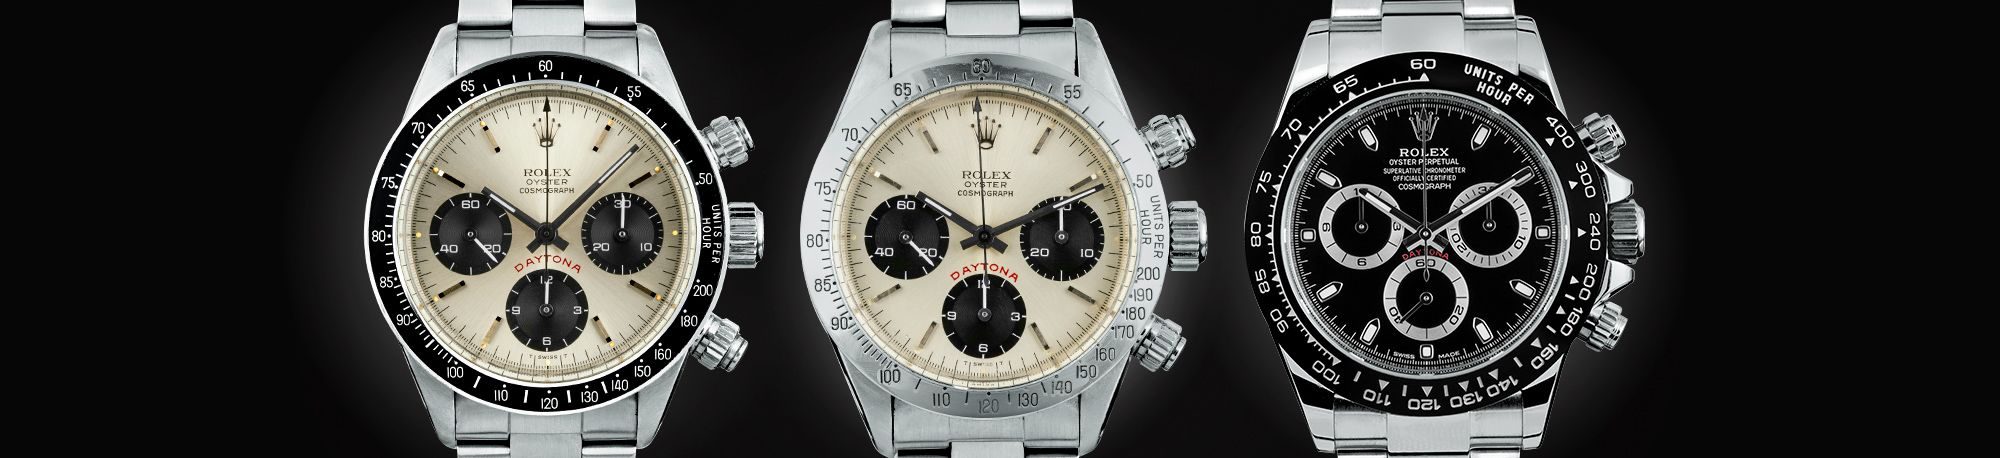 The Rolex Daytona Capsule Collection